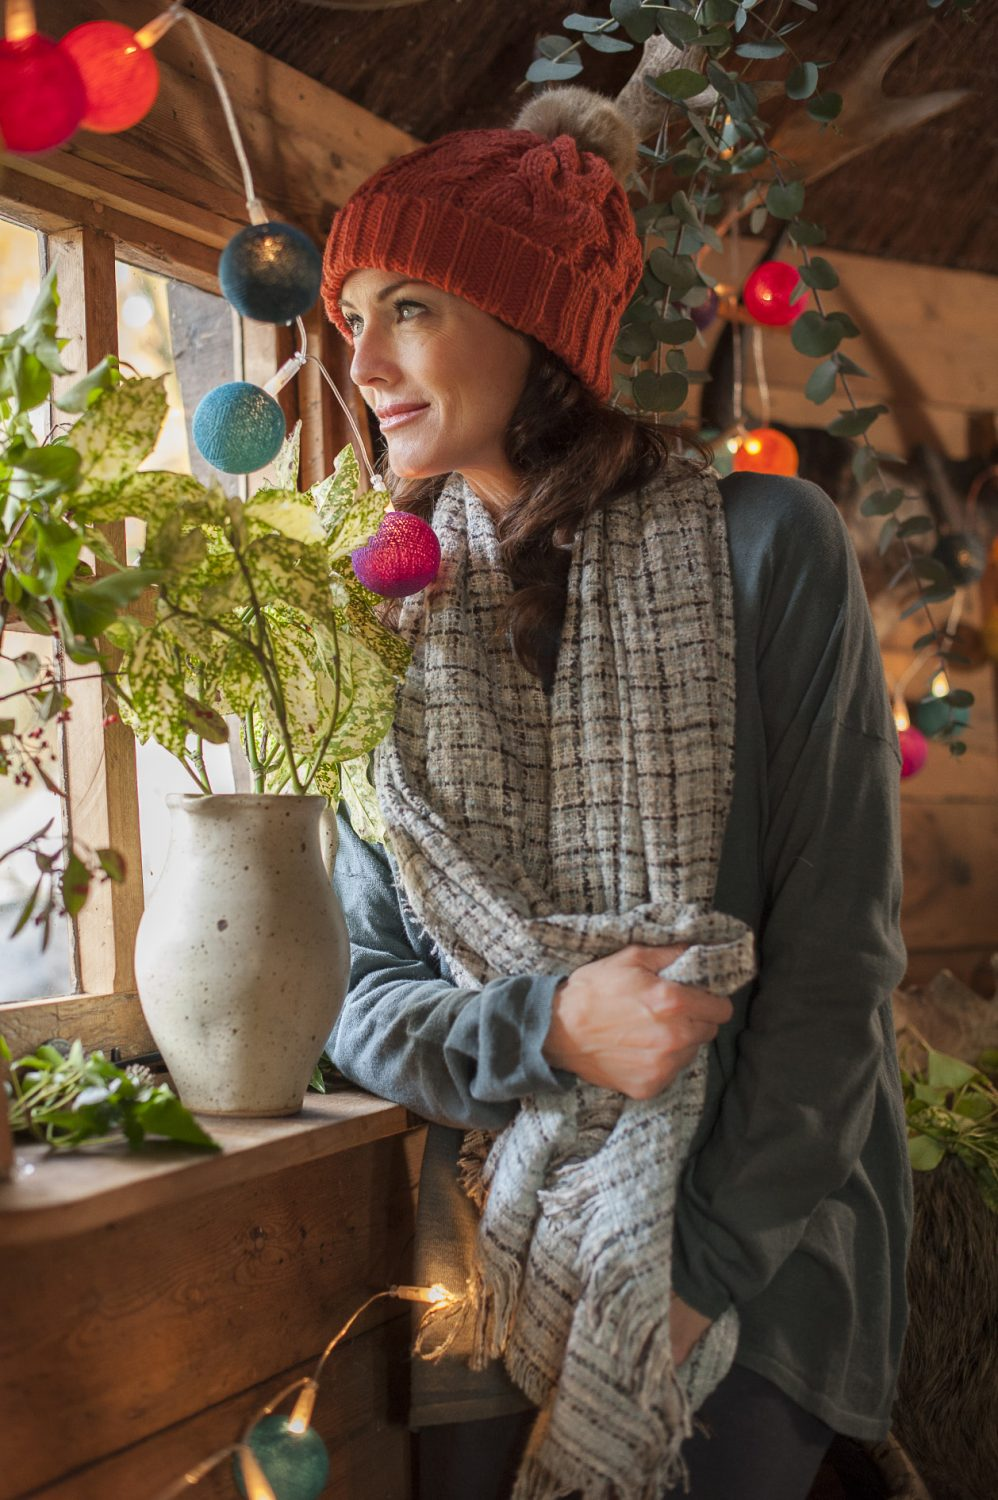 Powder knitted bobble hat, £21, scarf, £26, Ginger Toby top, £58, Spice, Cranbrook spicecranbrook.co.uk 01580 714156; fairy light sets, from £23.95, Cable & Cotton cableandcotton.co.uk